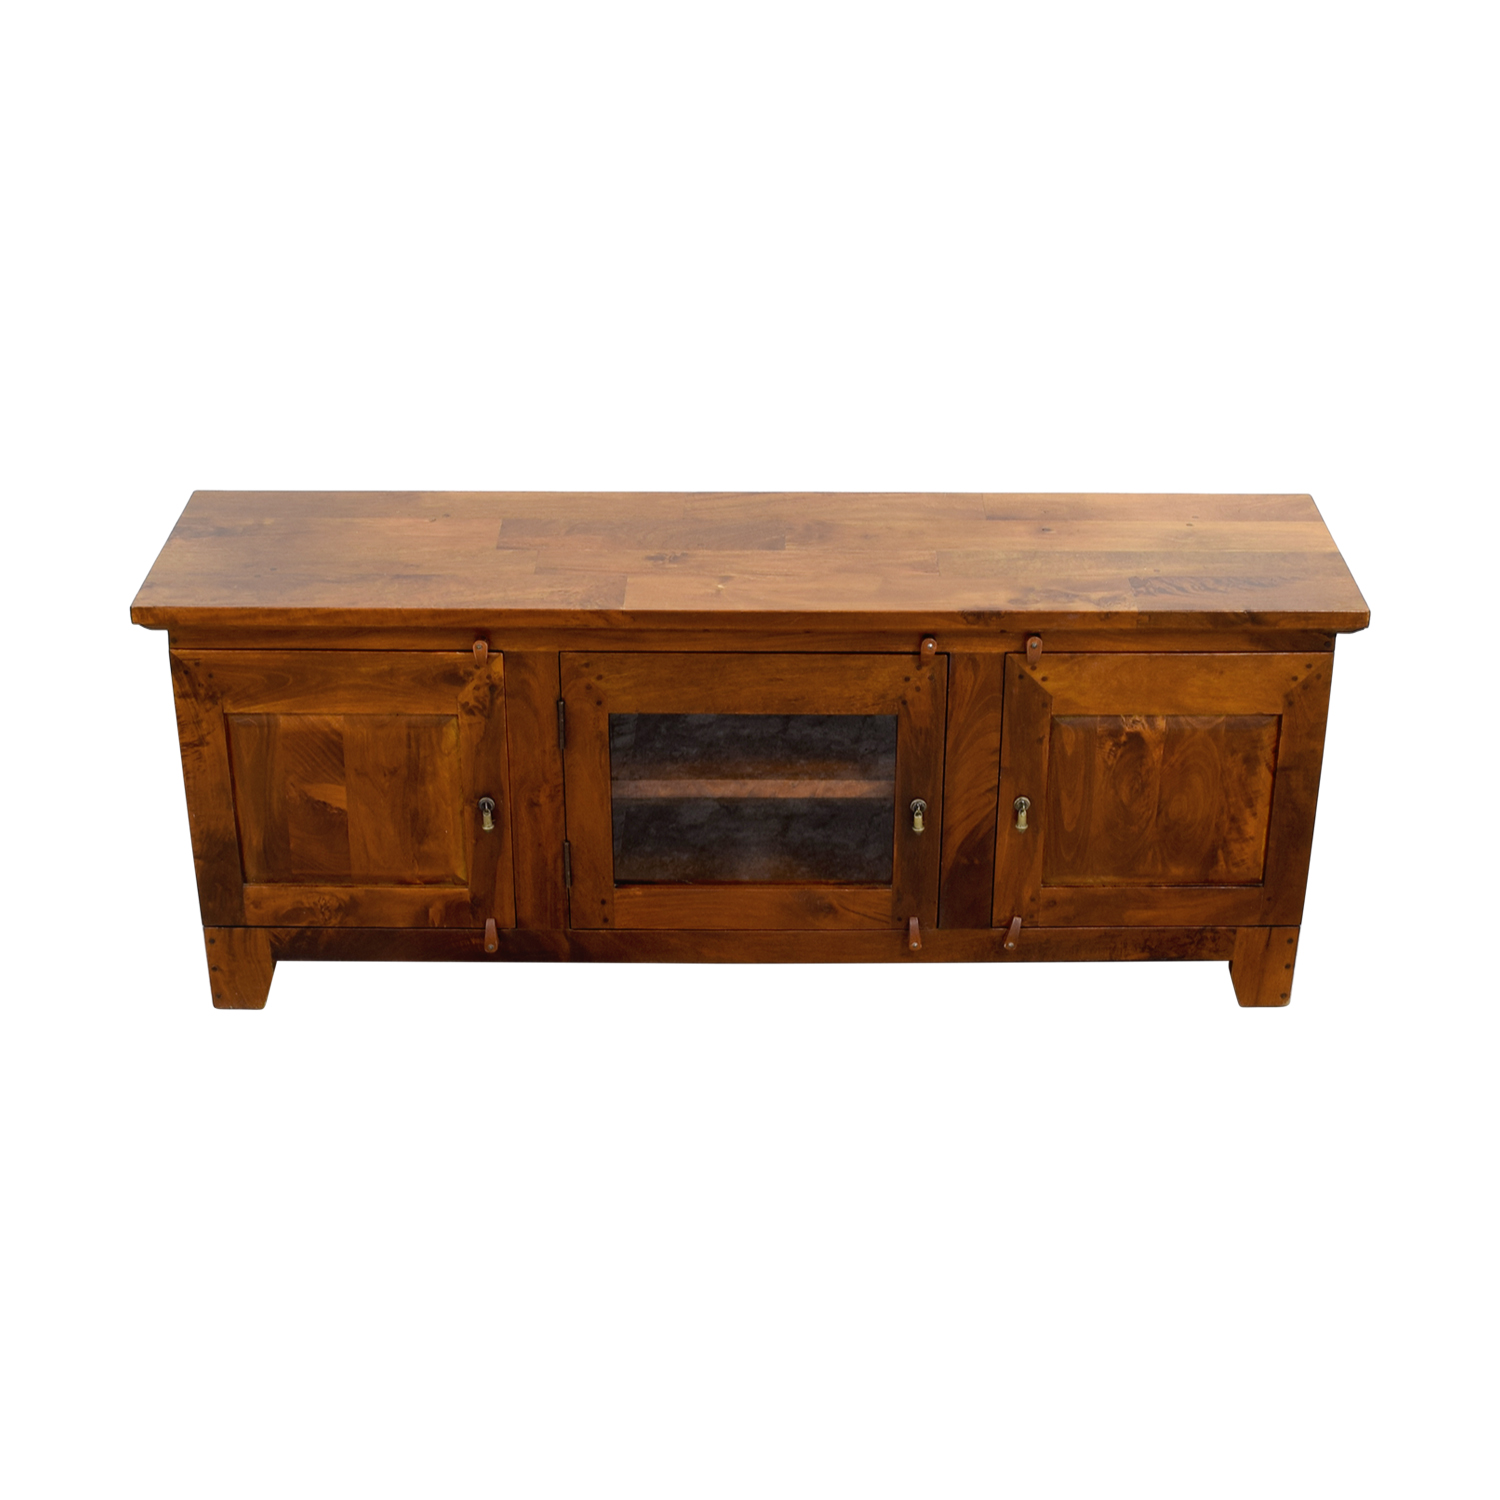 West Elm West Elm Wood Entertainment Stand